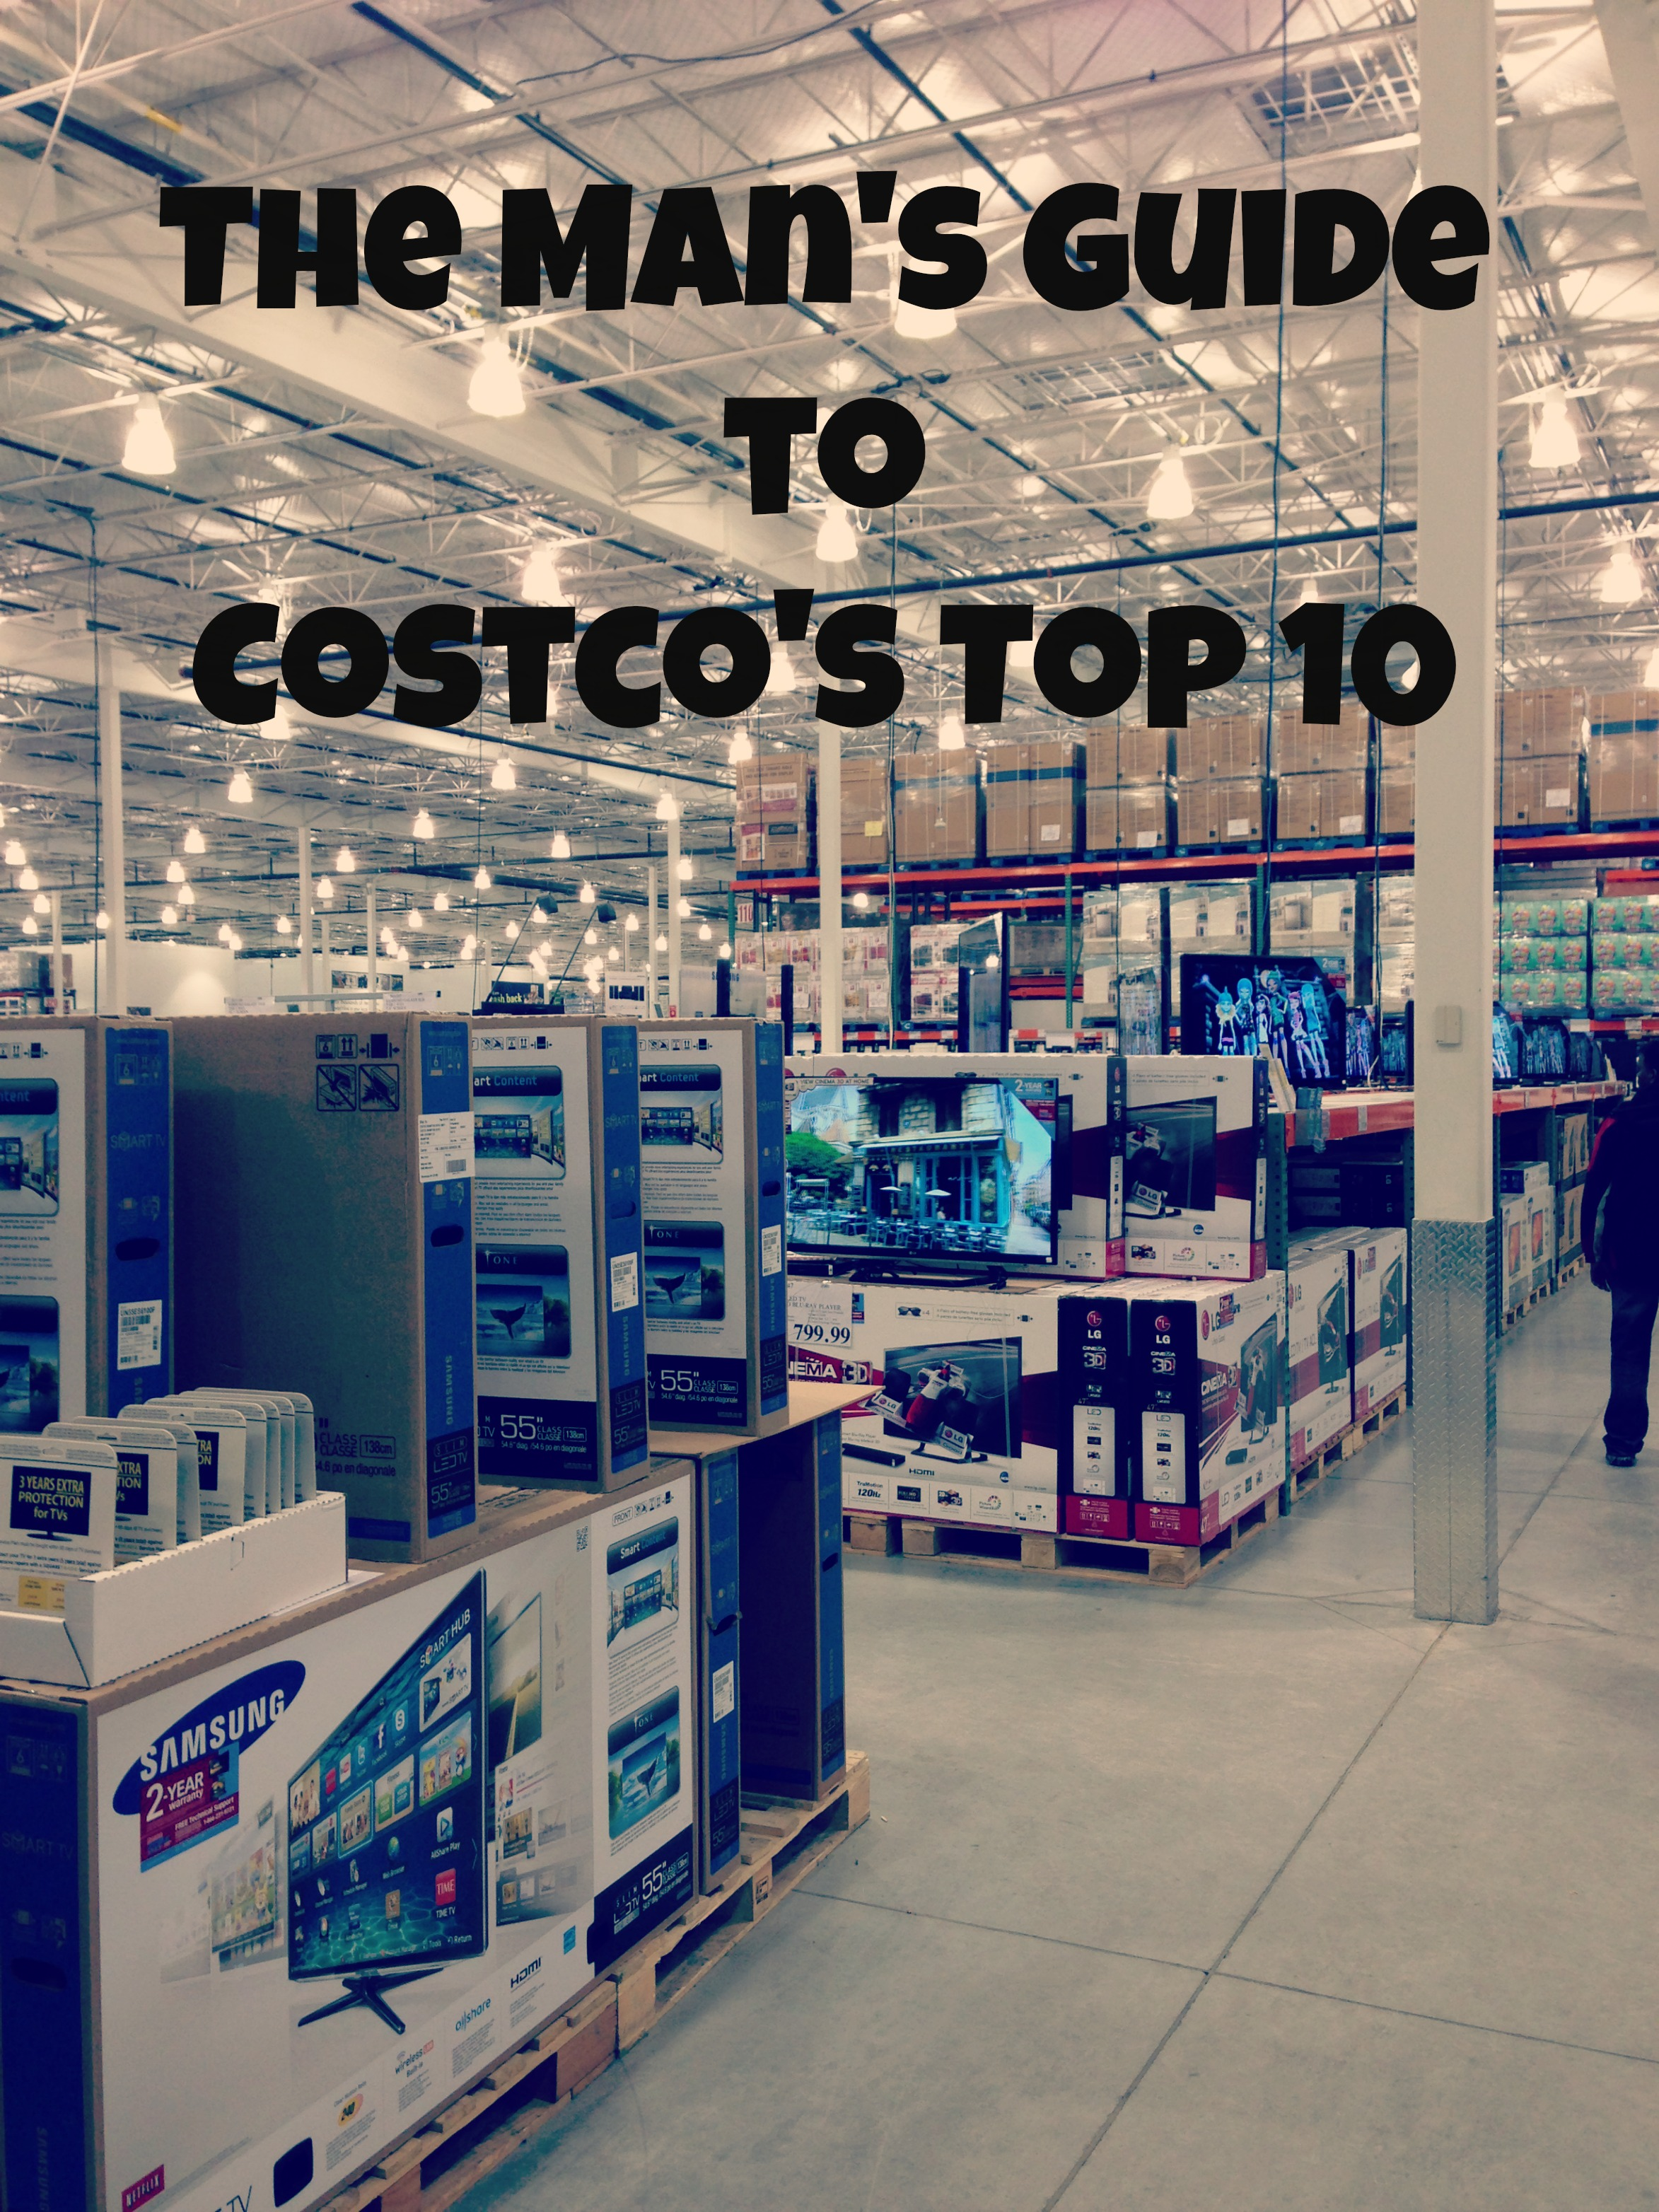 The Mans Guide To Costco Top 10 Serving From Home